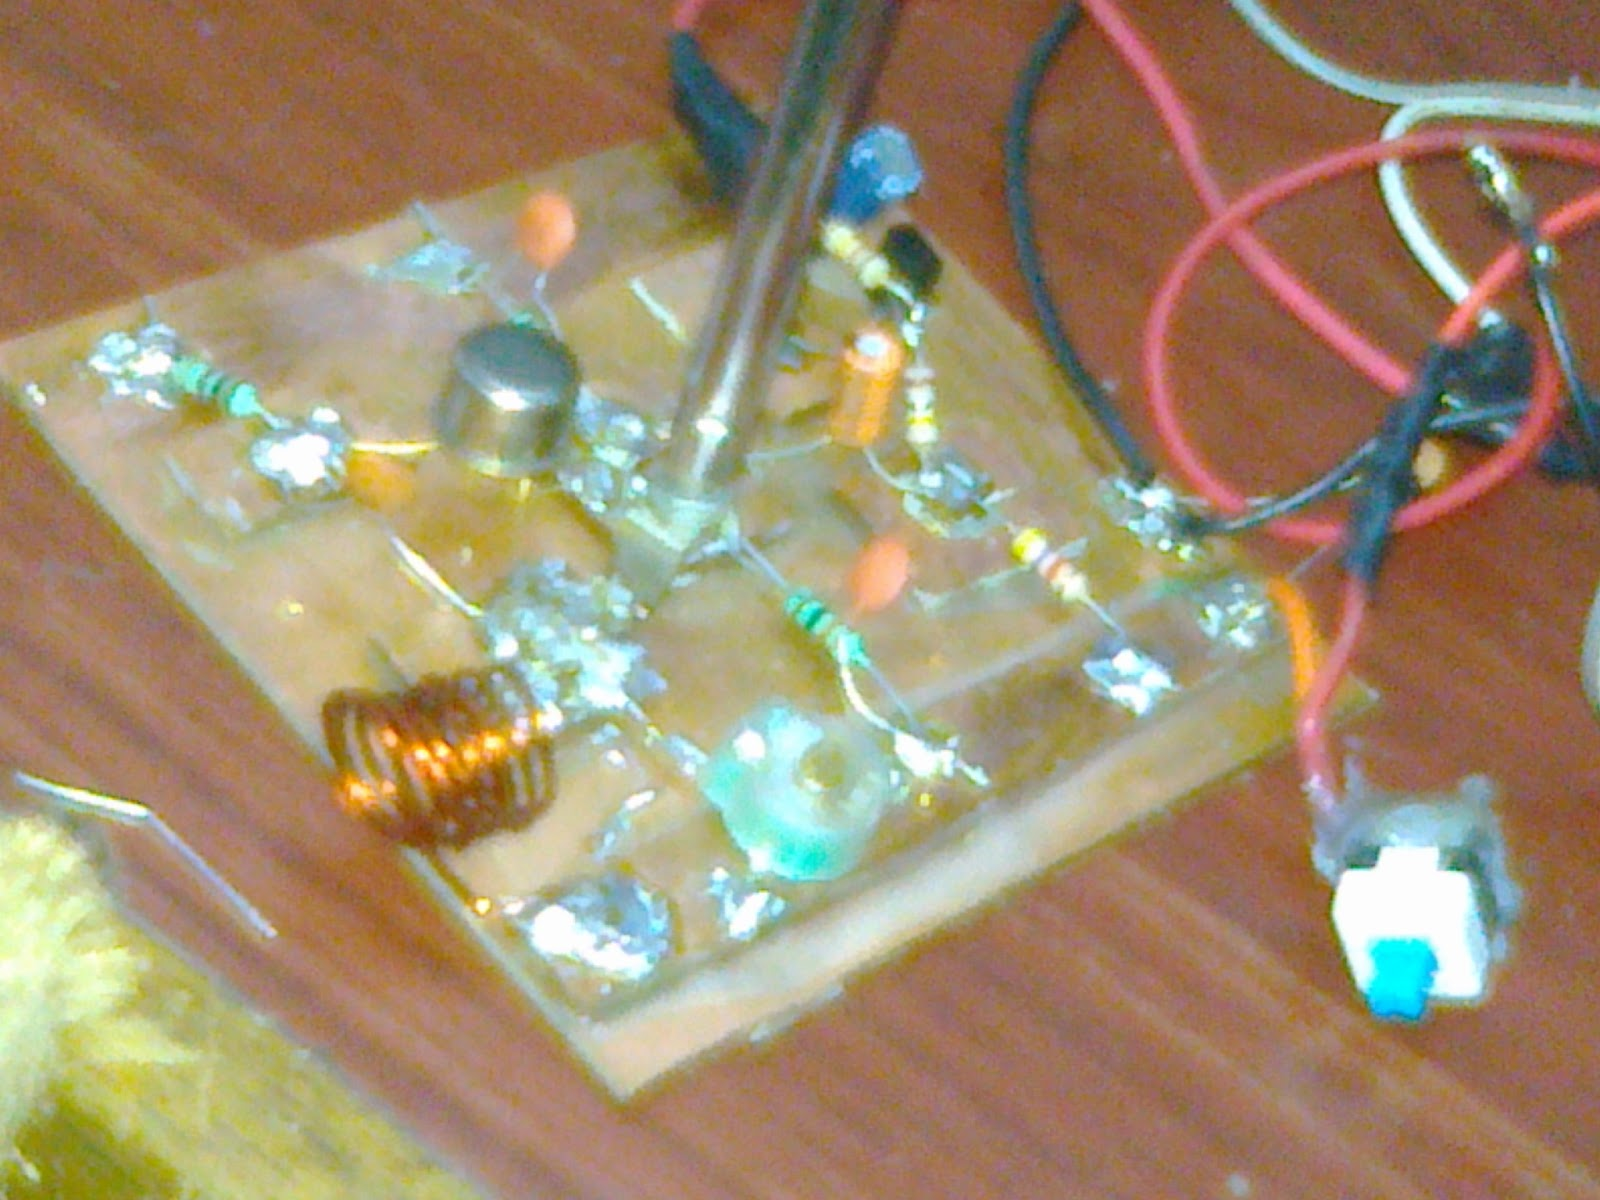 Some Of My Experiment With Science Long Range Fm Transmitter How To Build 2 Transistor Voice A Side Photo The Circuit